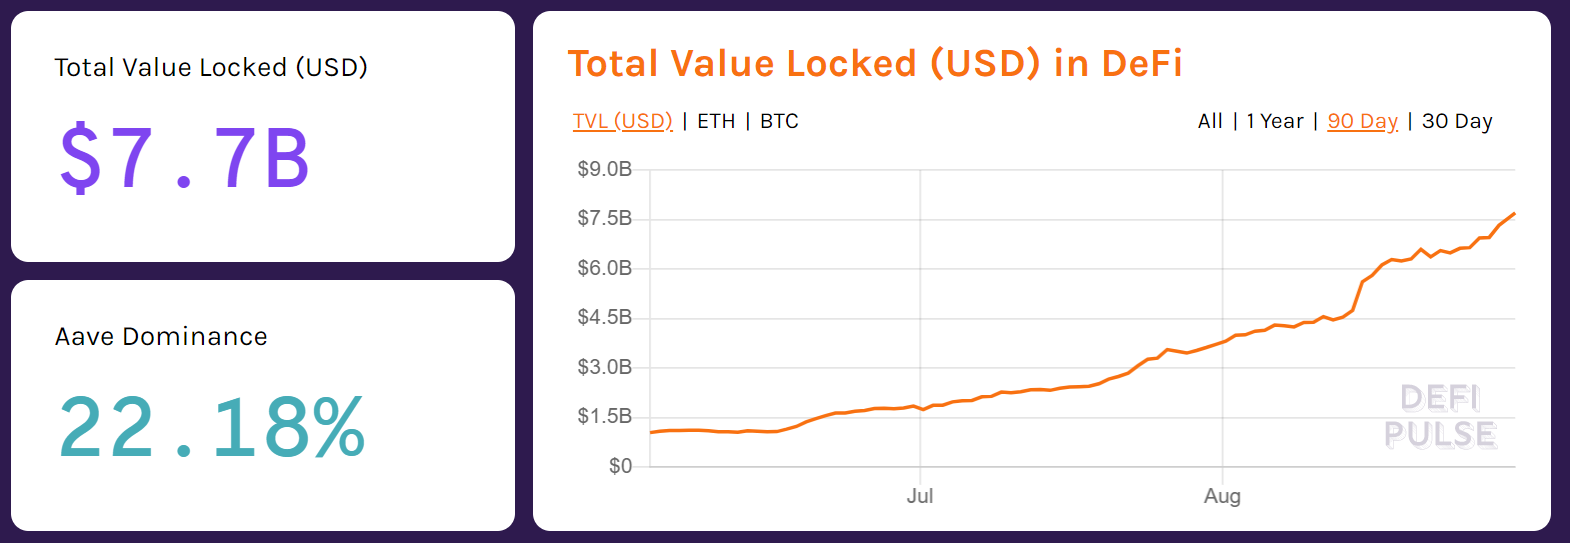 The total value locked in Ethereum DeFi